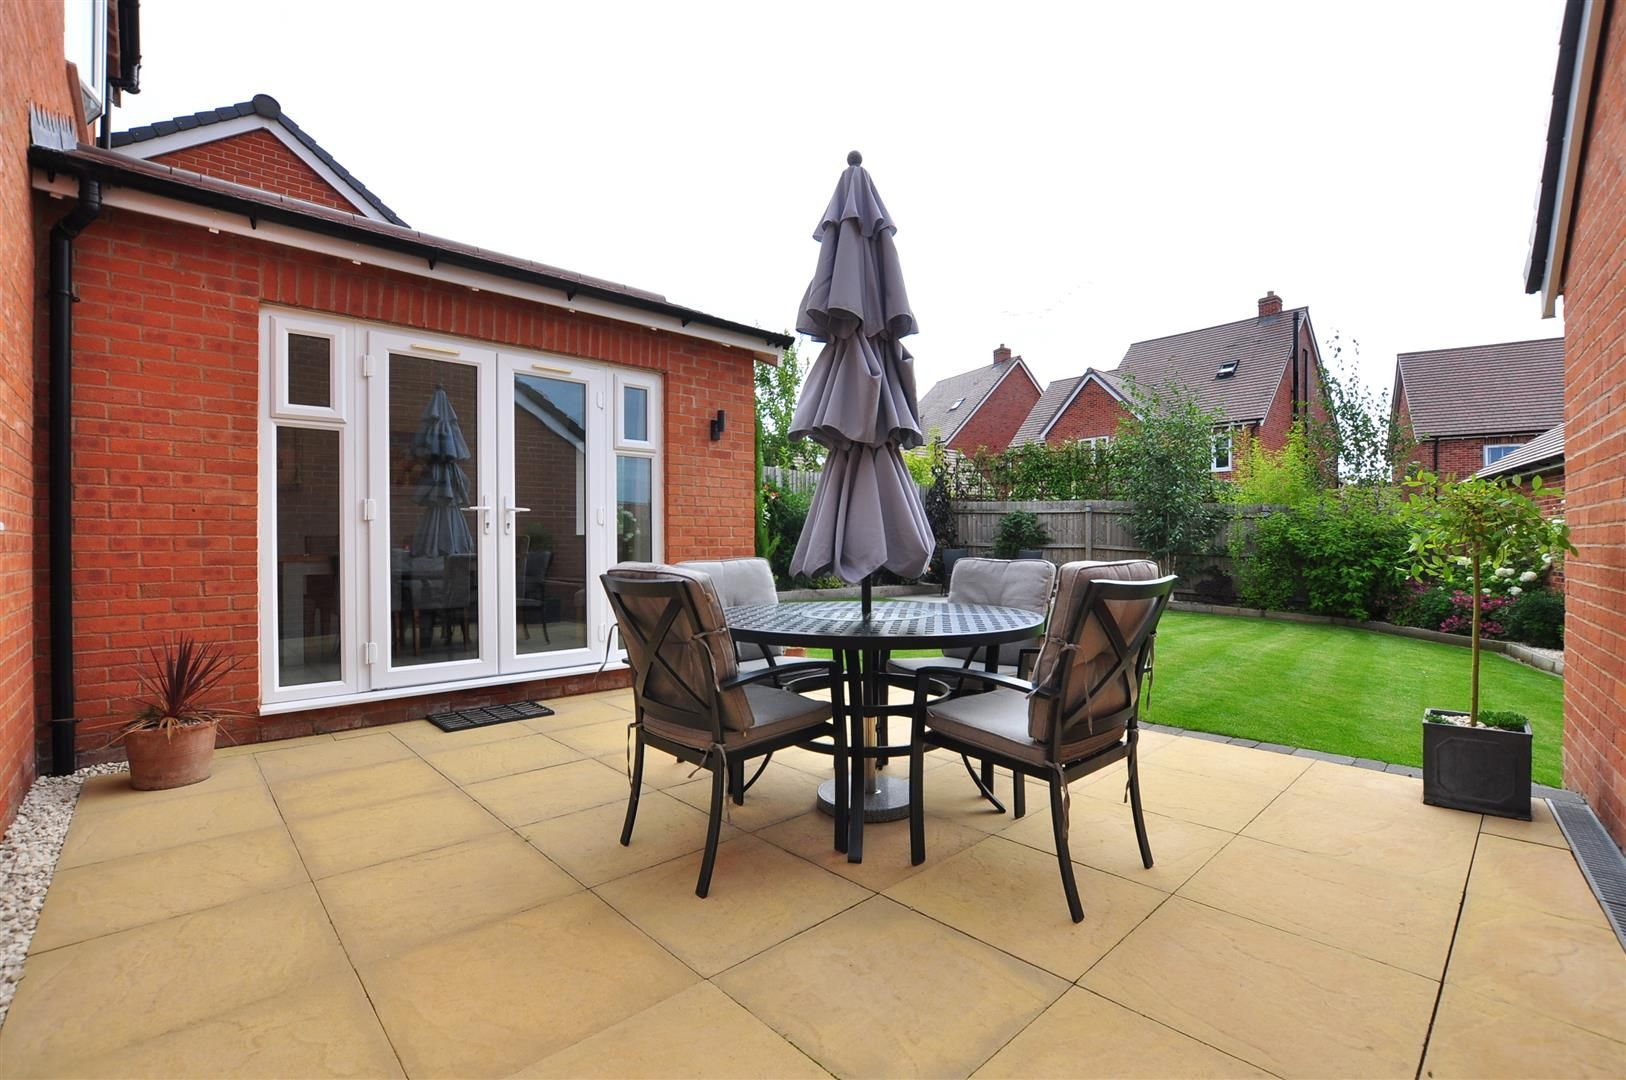 4 bed detached for sale in Hagley  - Property Image 21